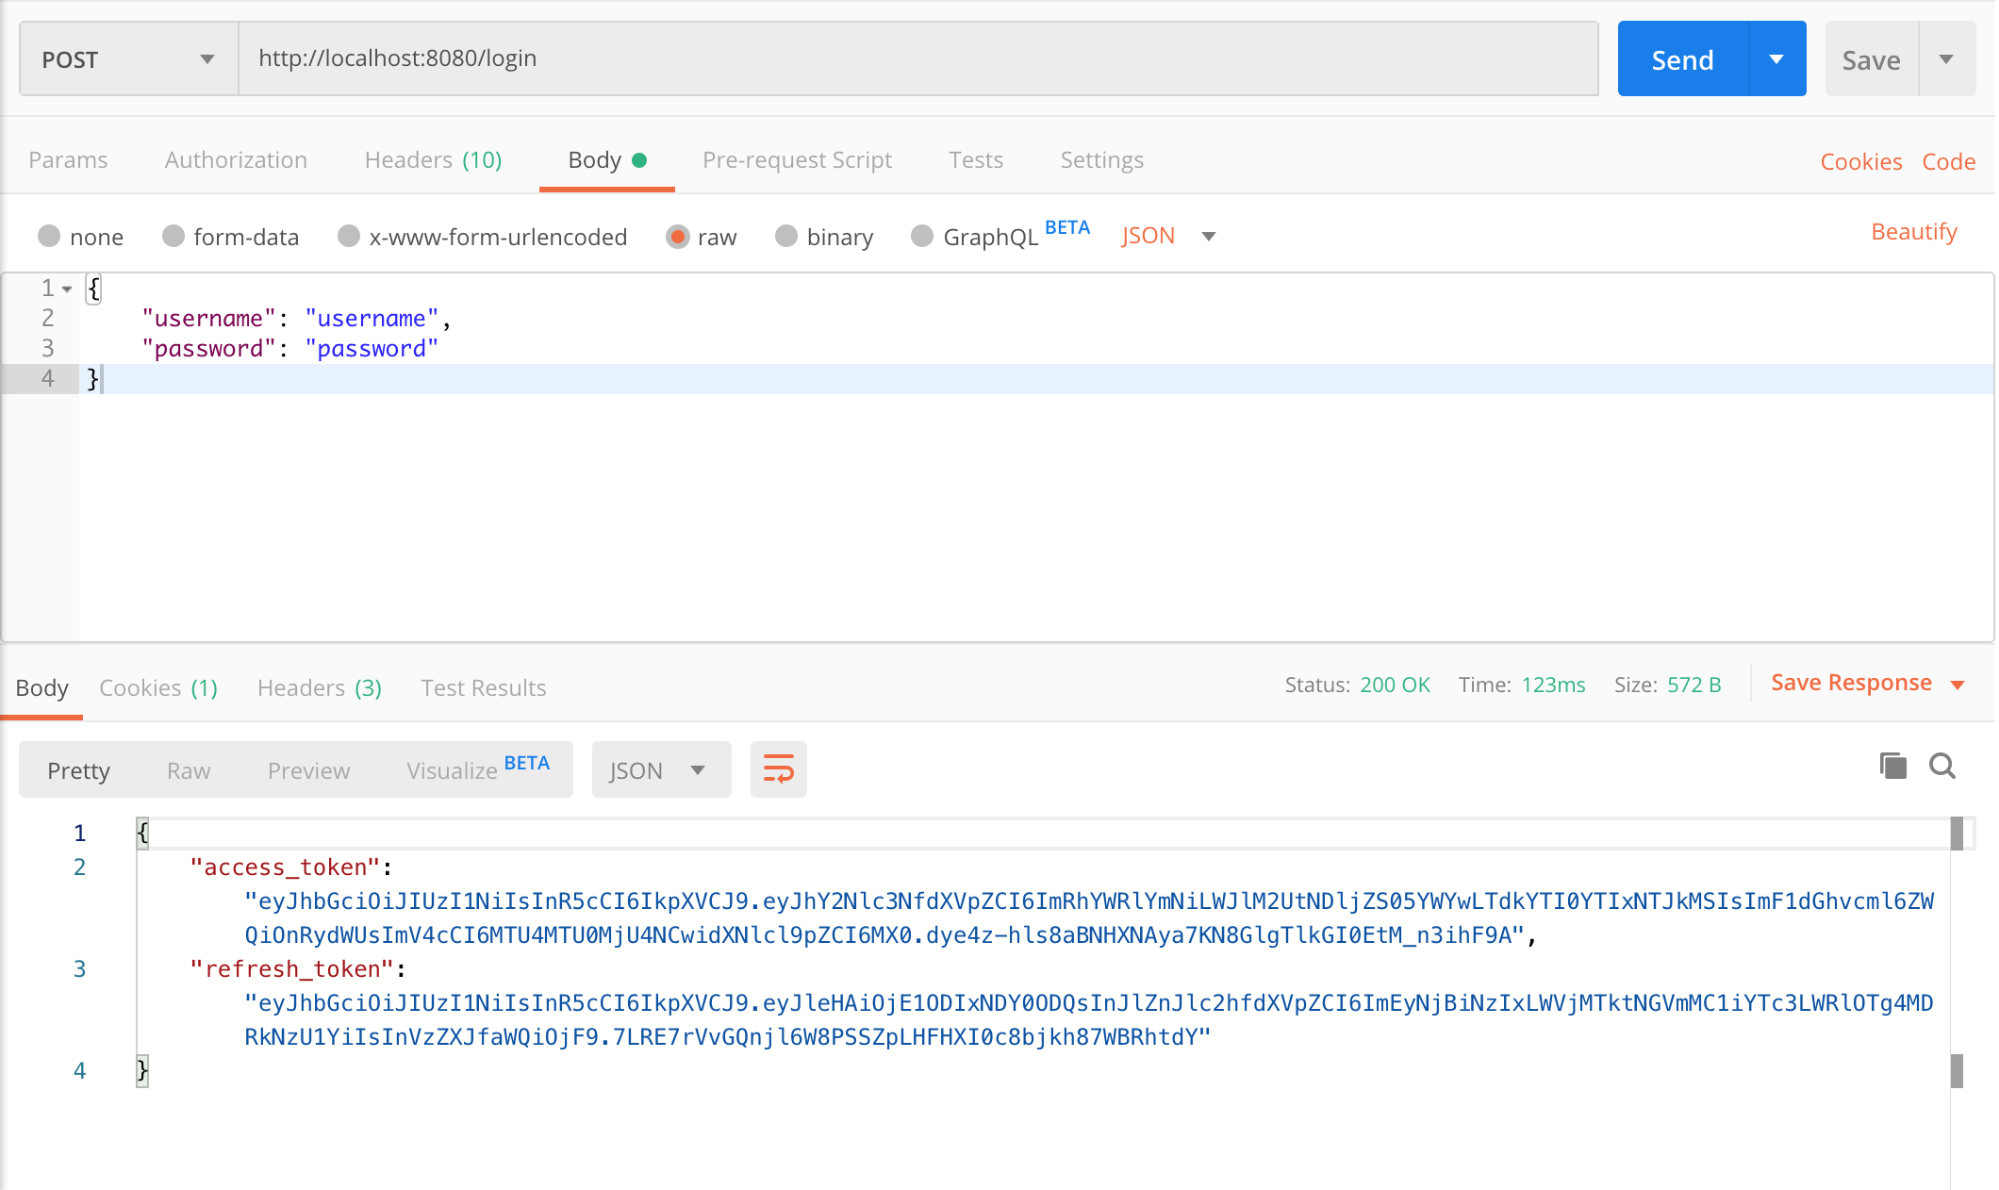 Checking the access and refresh token reponse in Postman